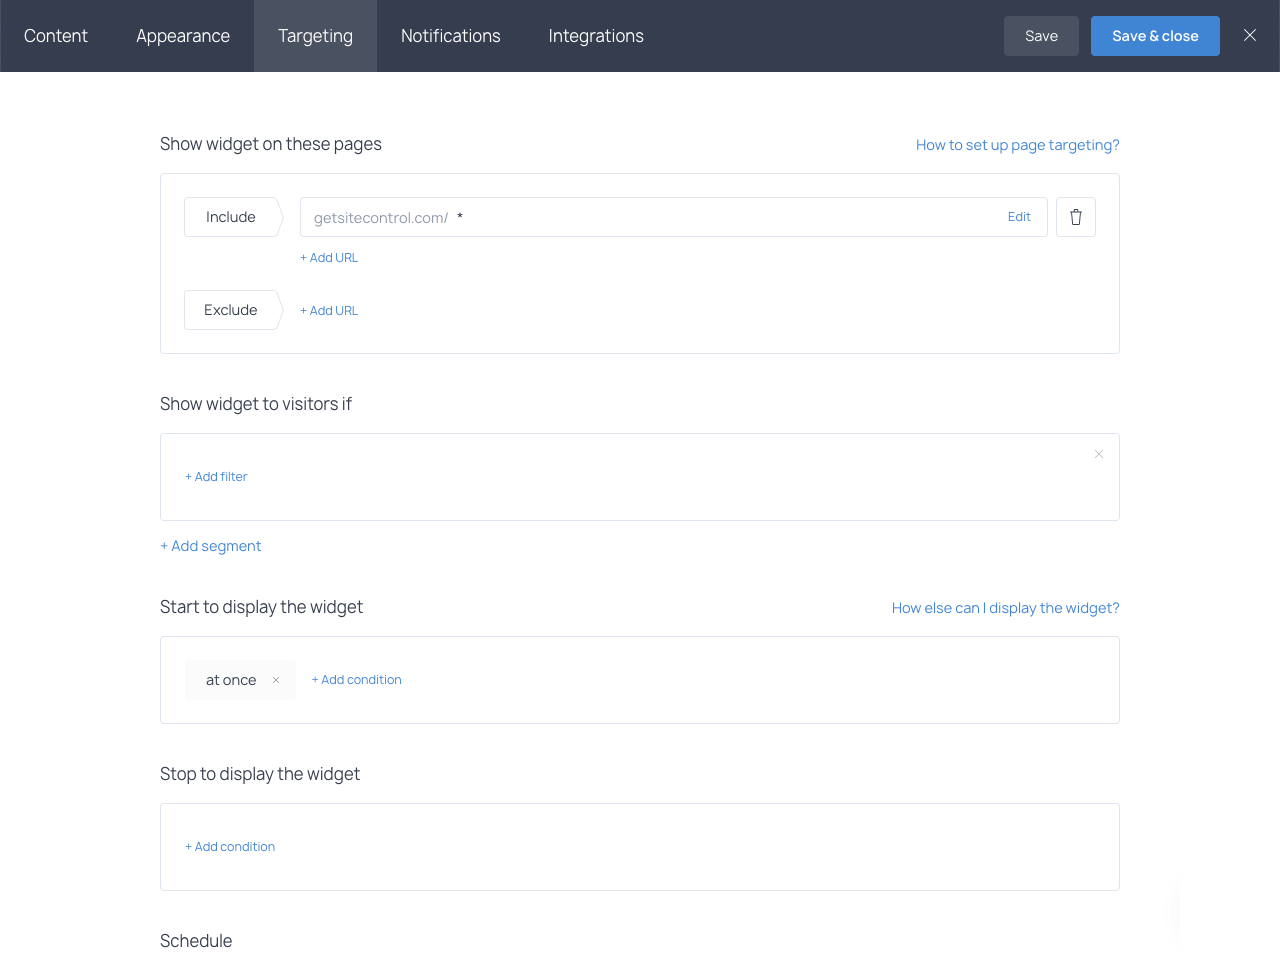 Targeting rules used to select pages where a quote request form will display